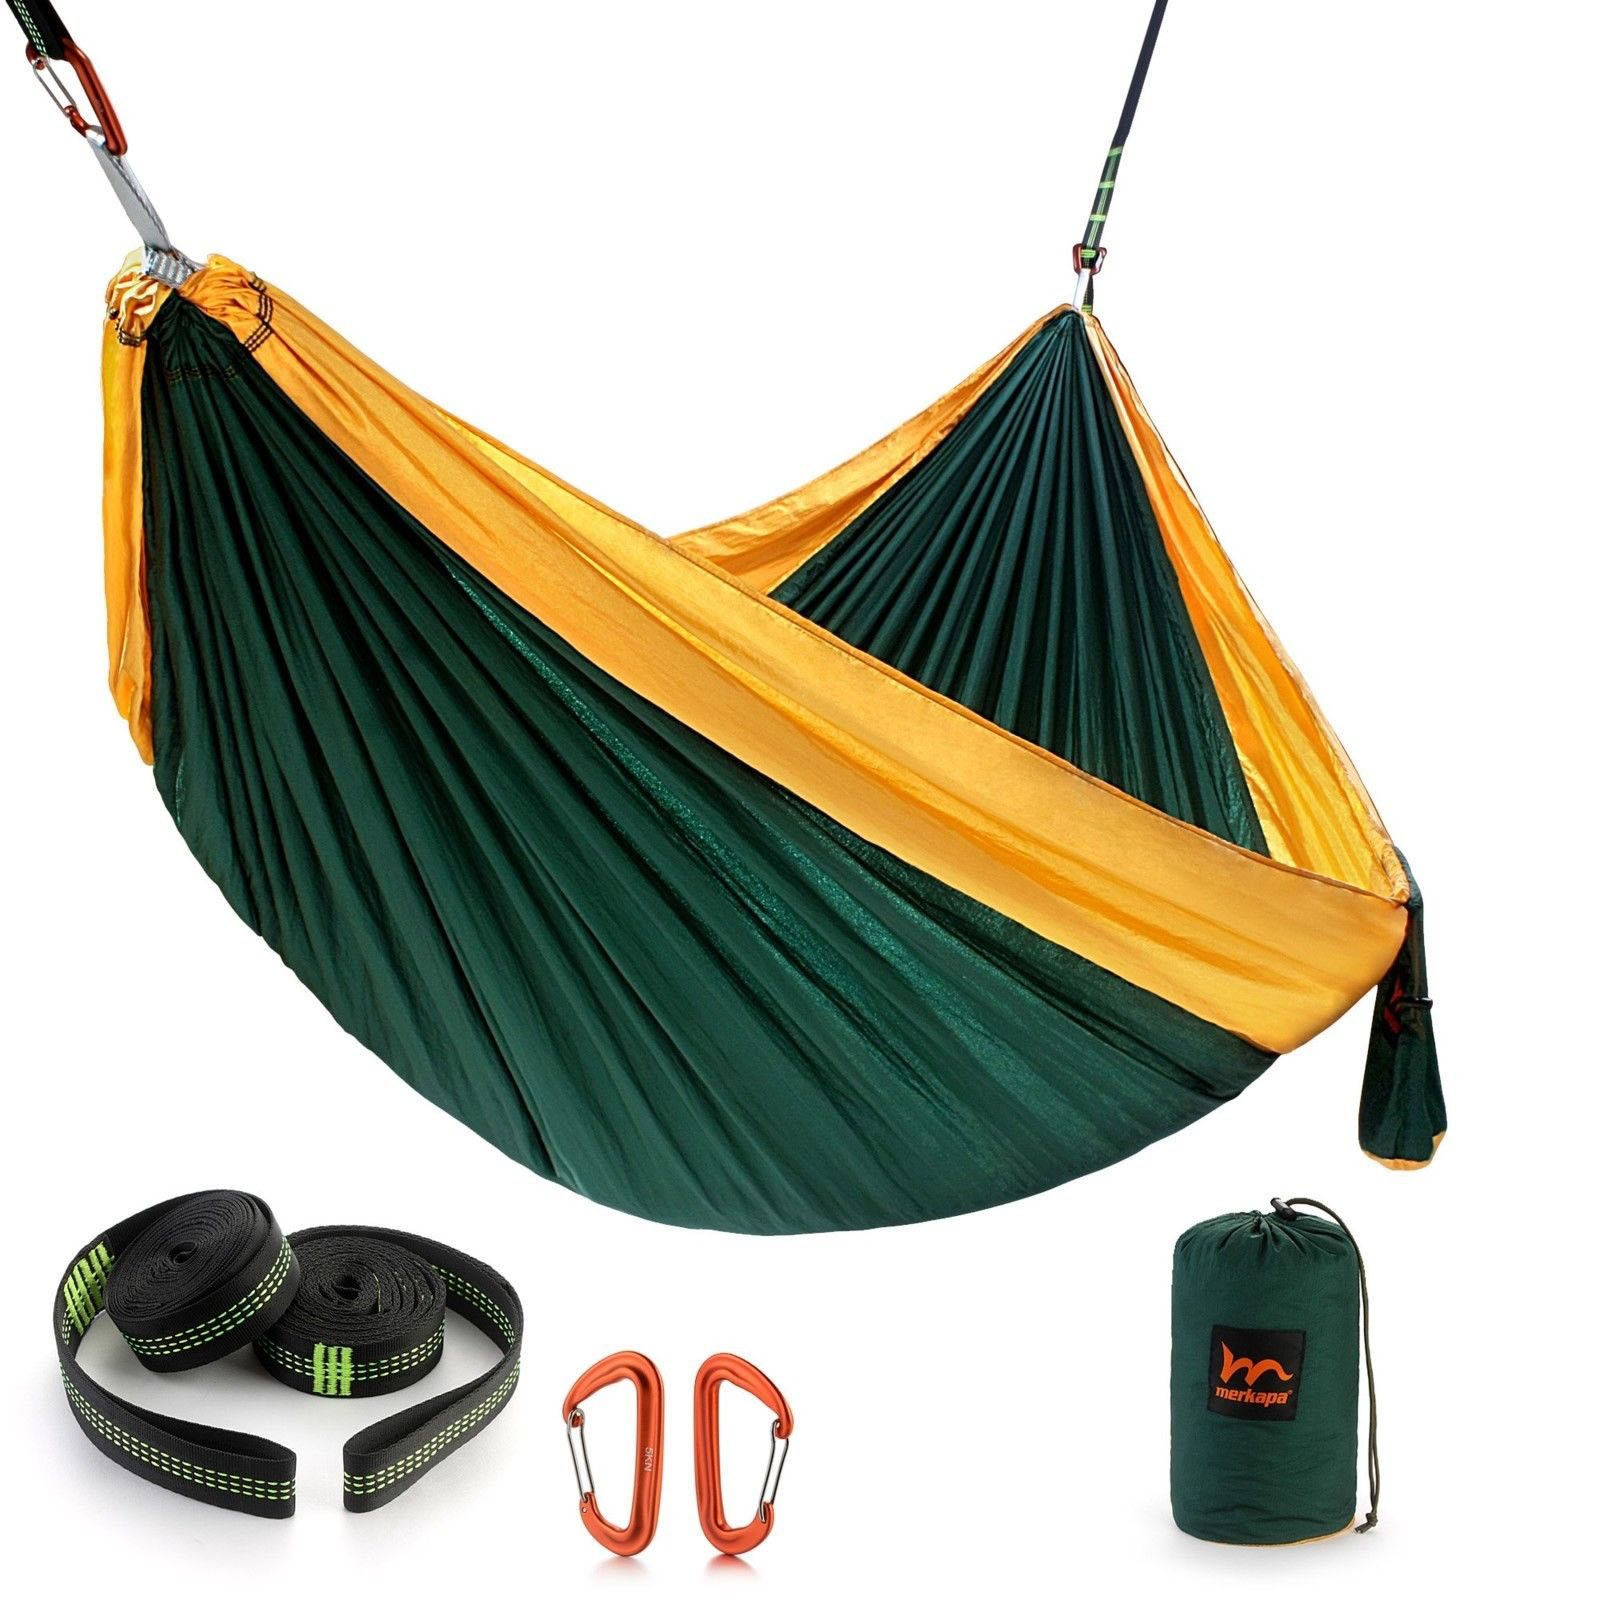 photo:   Merkapa XL Double Parachute Nylon Hammock hammock